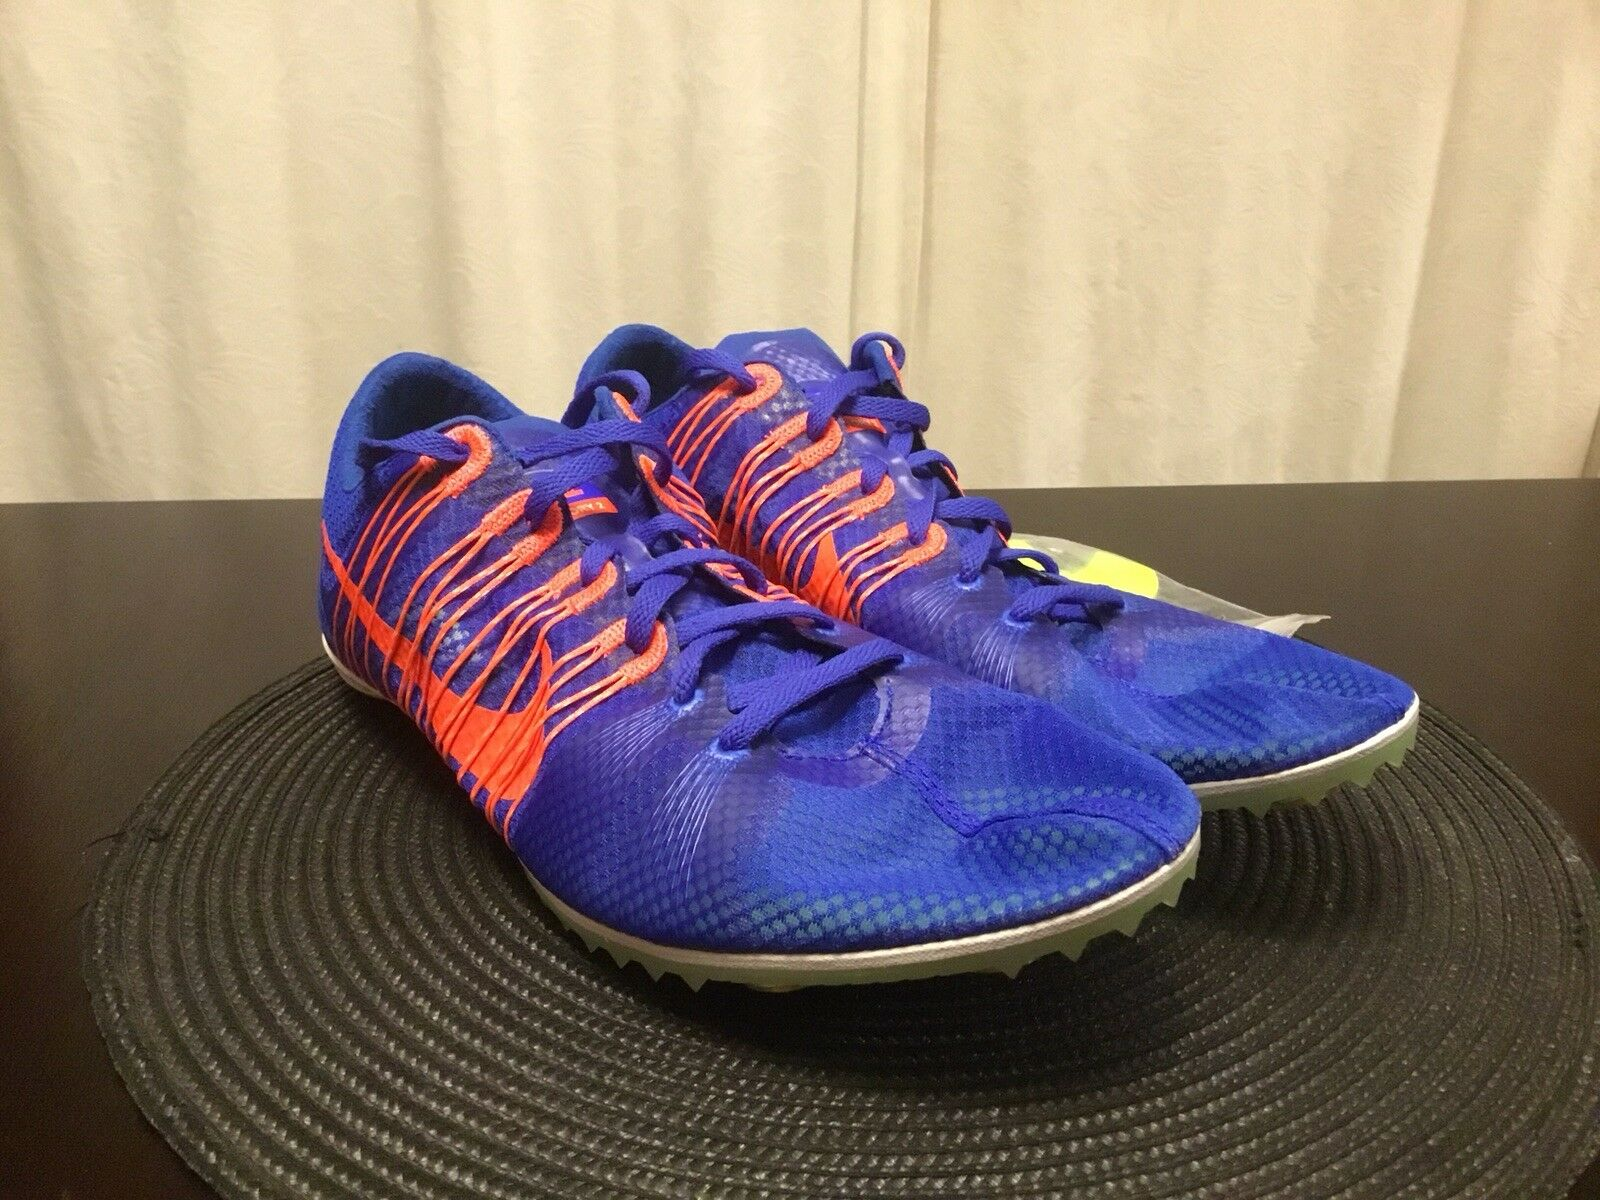 c934a57e68a8e ... Nike Mens Mens Mens Zoom Victory 2 Flywire Spikes Track Shoes 555365  487 US 13 New ...